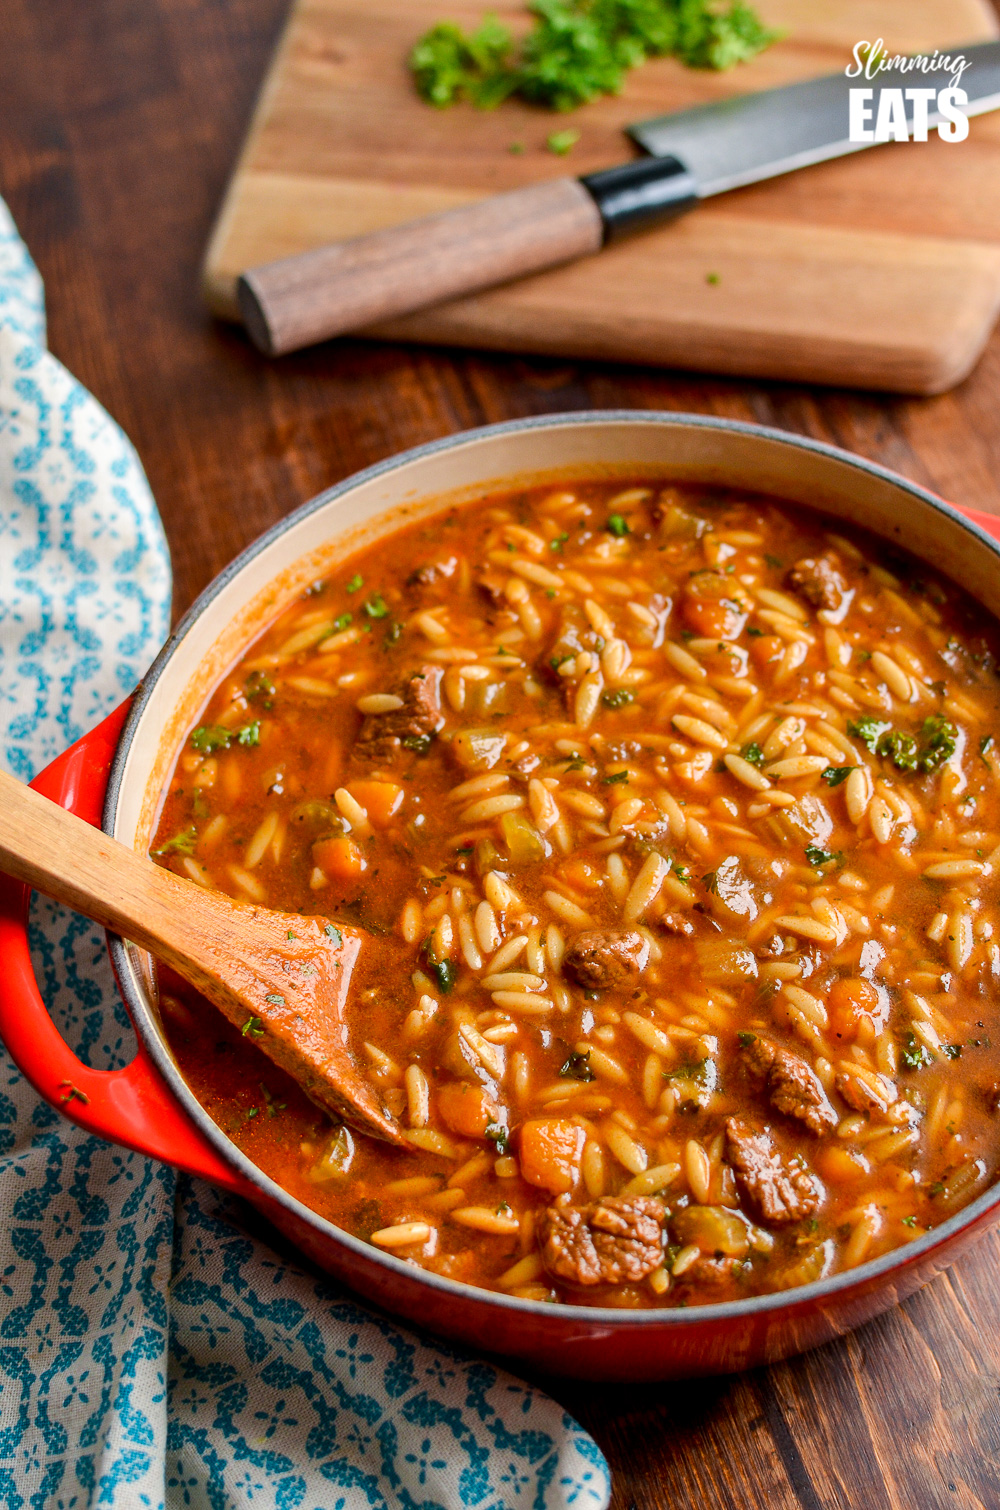 beef celery orzo stew in red dutch oven pot with chopping board and knife in background